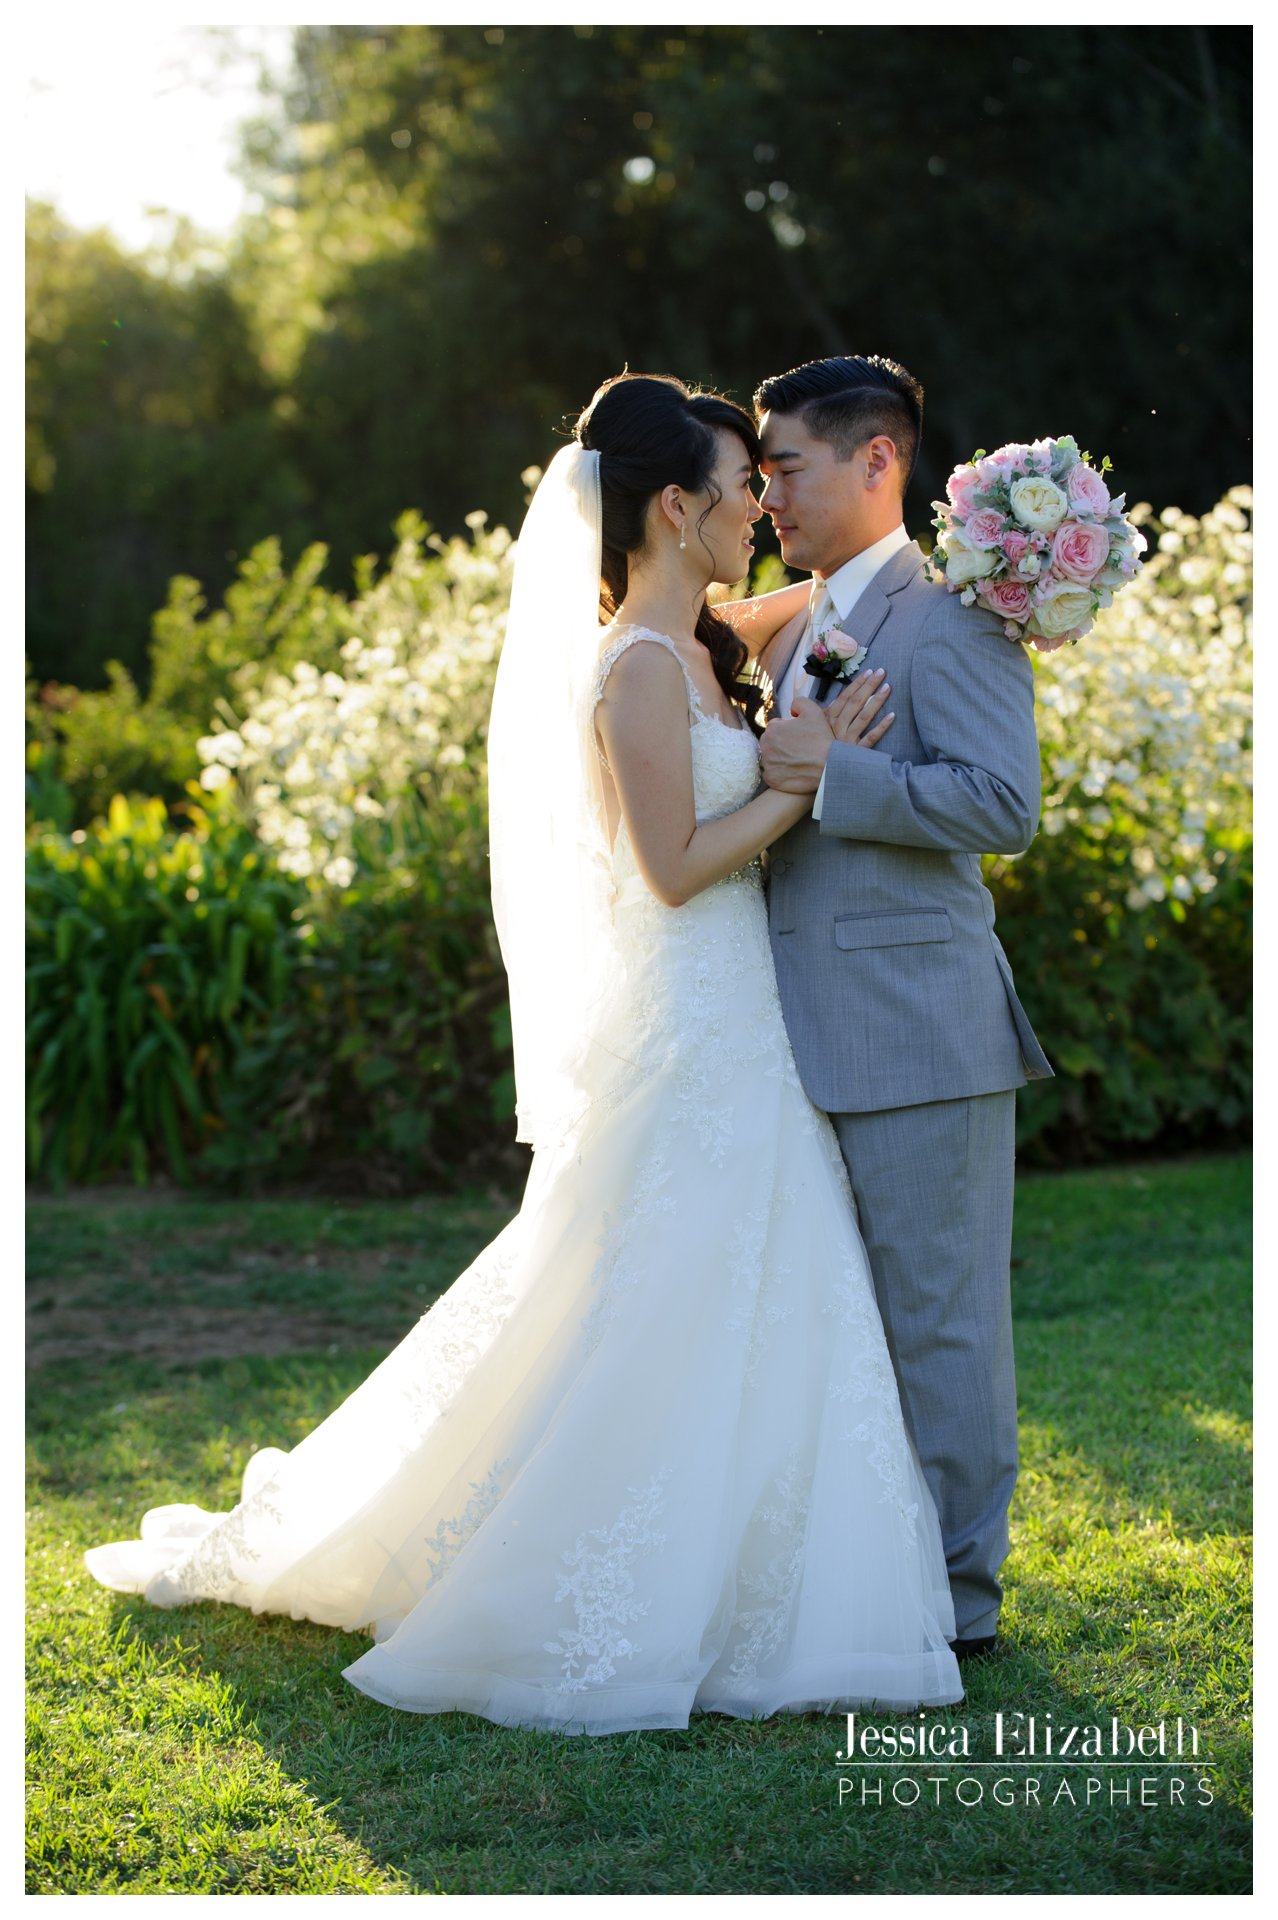 26-South-Coast-Botanic-Garden-Palos-Verdes-Wedding-Photography-by-Jessica-Elizabeth1.jpg